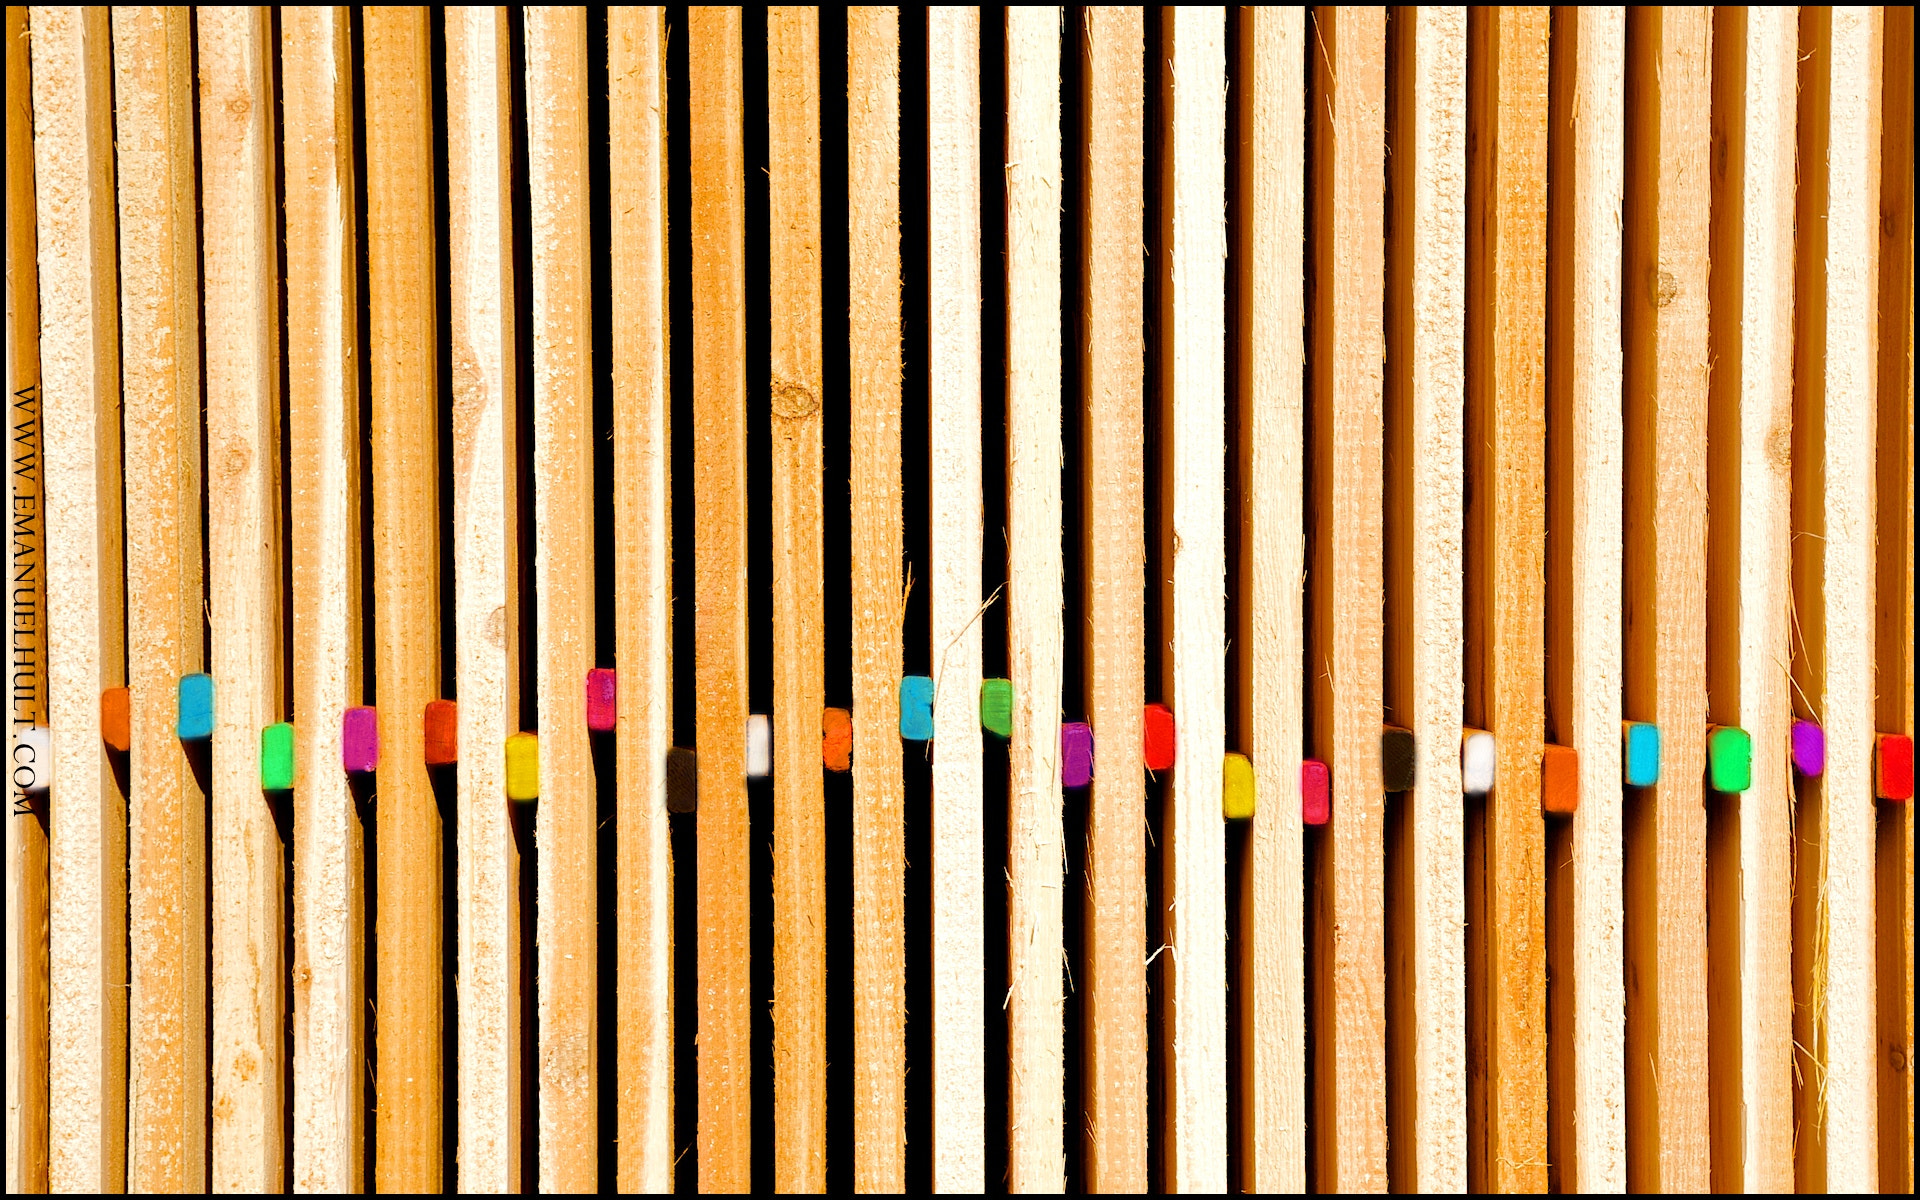 Photograph Rainbow Lumber by Emanuel Hult on 500px